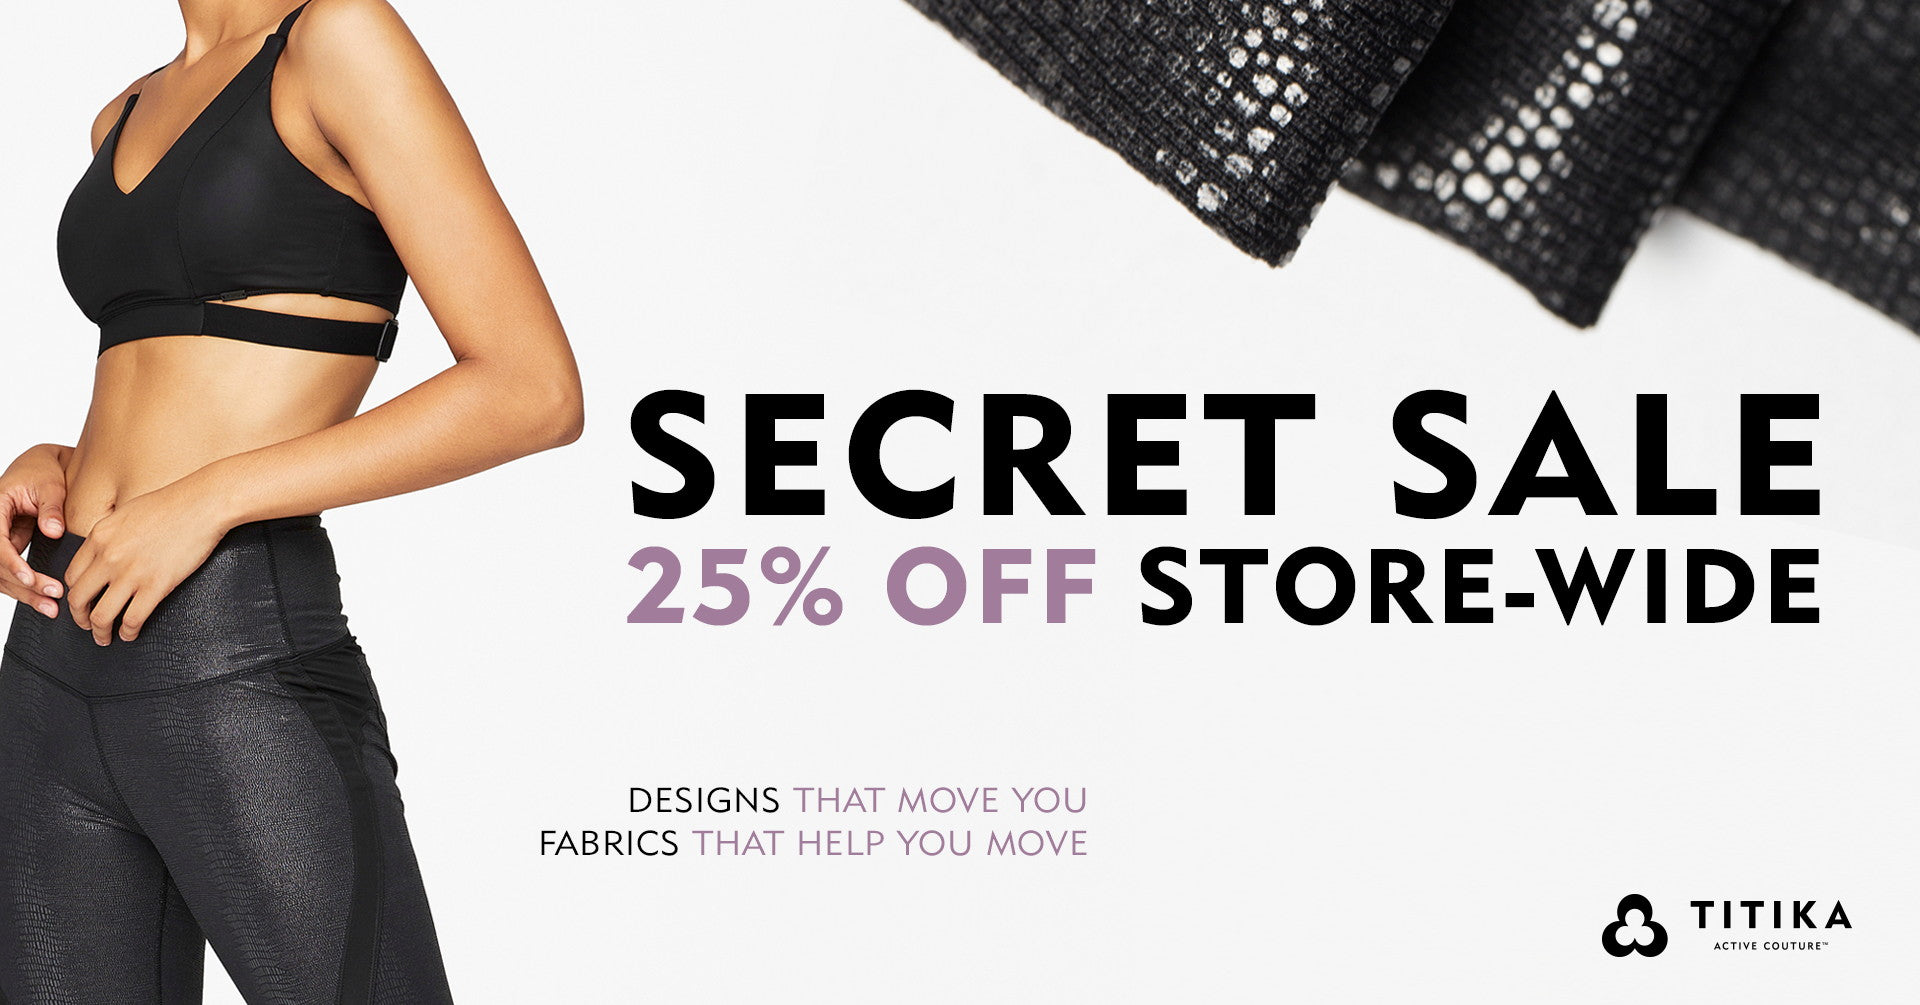 SECRET SALE - 25% OFF